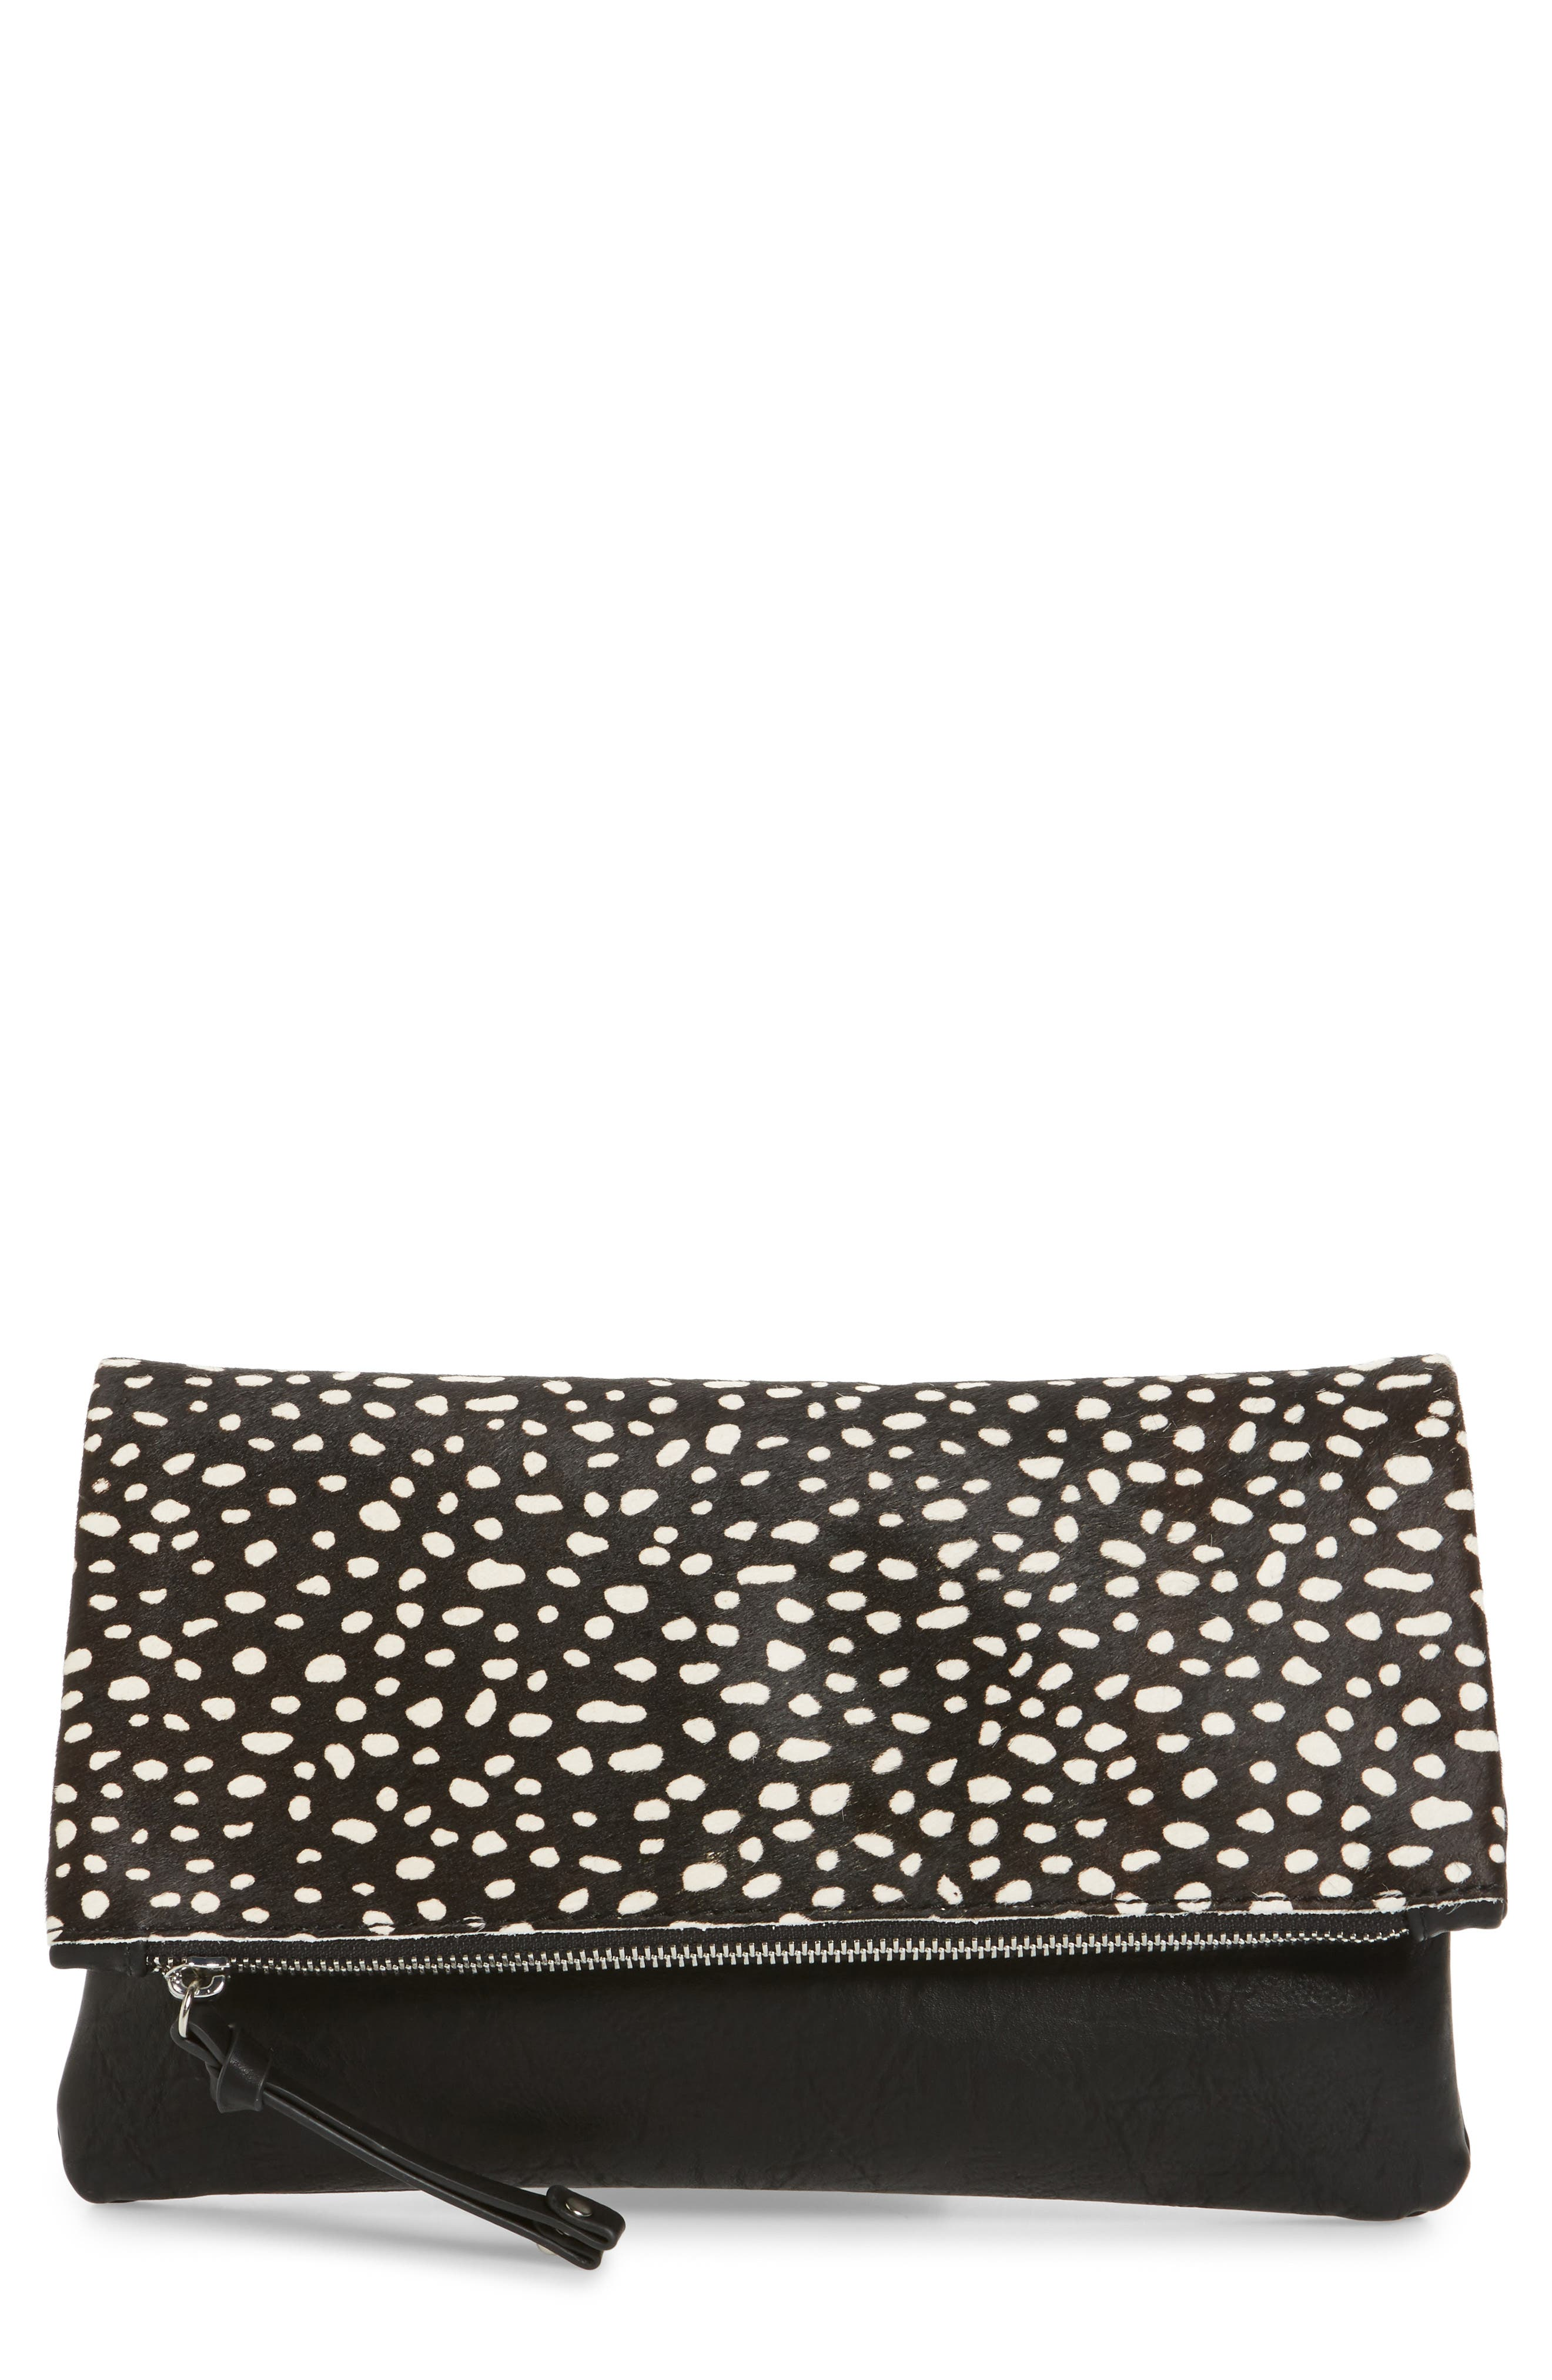 Main Image - Sole Society 'Marlena' Faux Leather Foldover Clutch